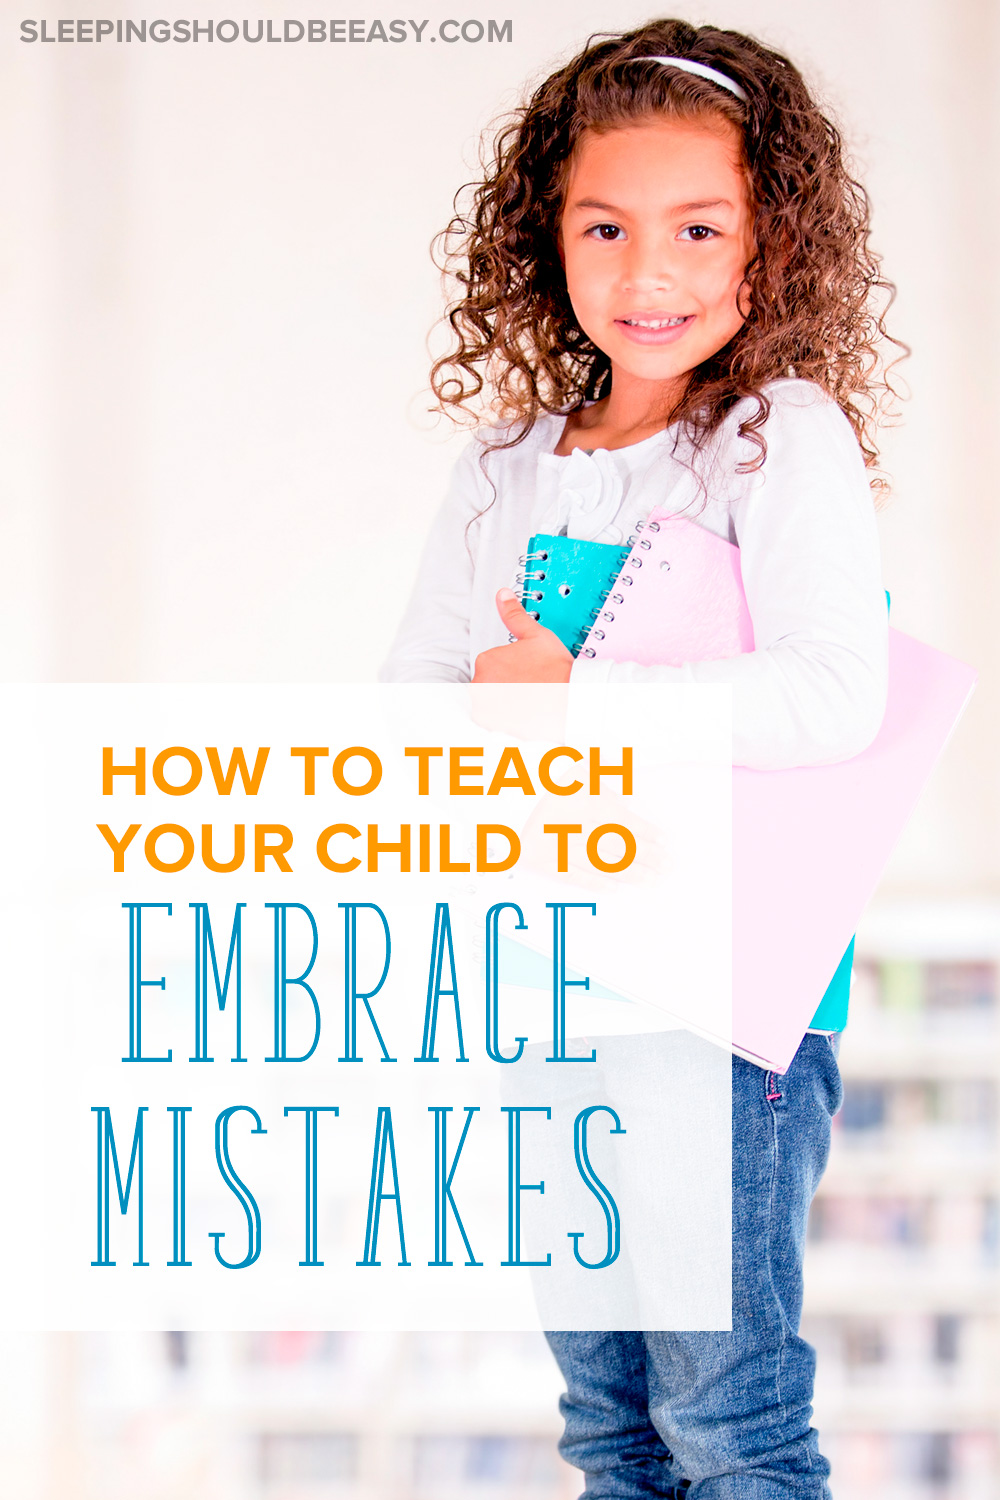 Kids may not like mistakes, but they can learn so much from them. Use the following techniques to teach your child to embrace learning through mistakes.